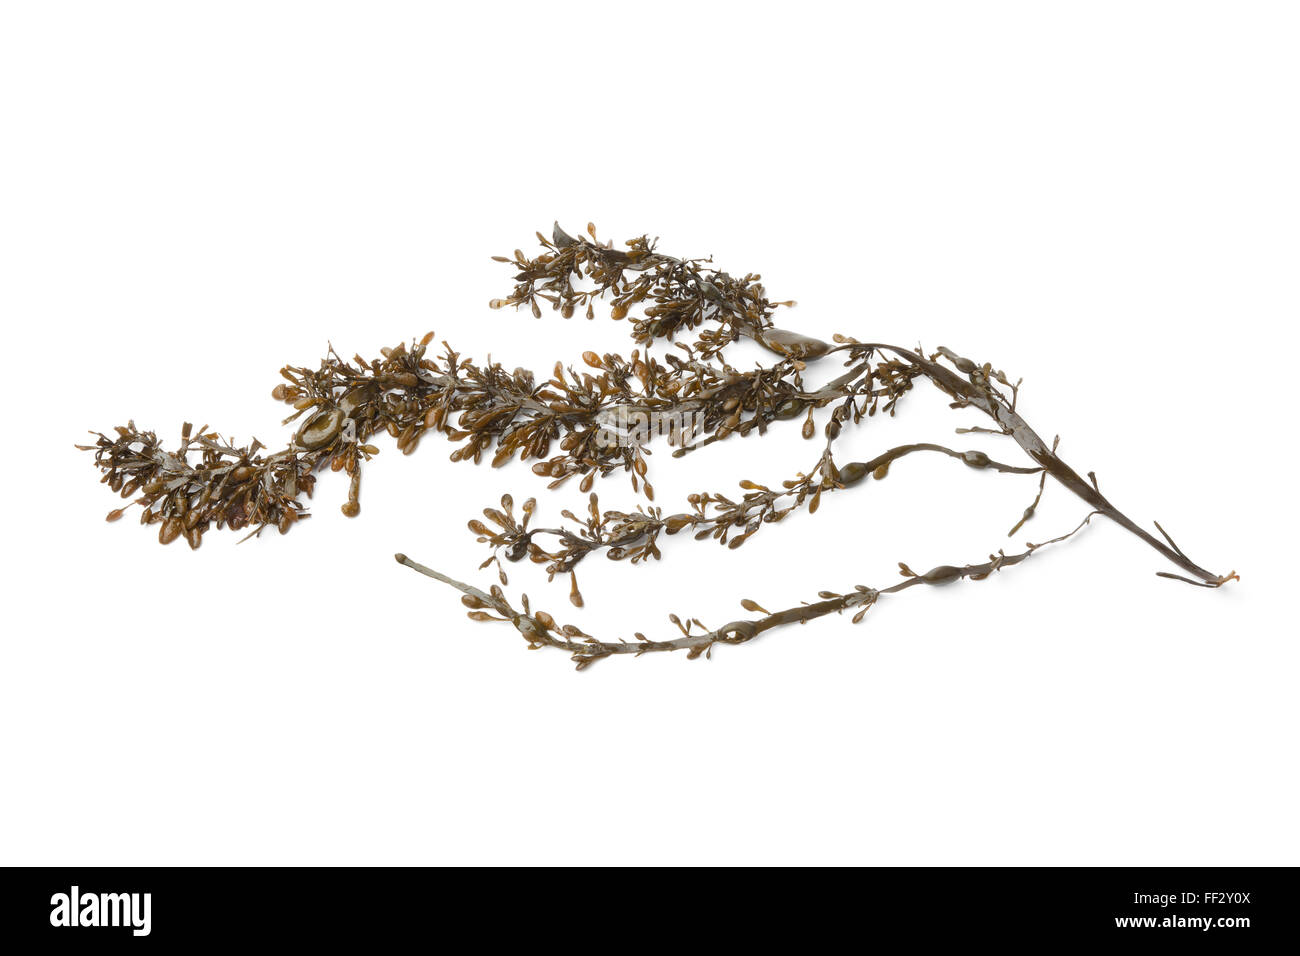 Twig of common seaweed on white background - Stock Image